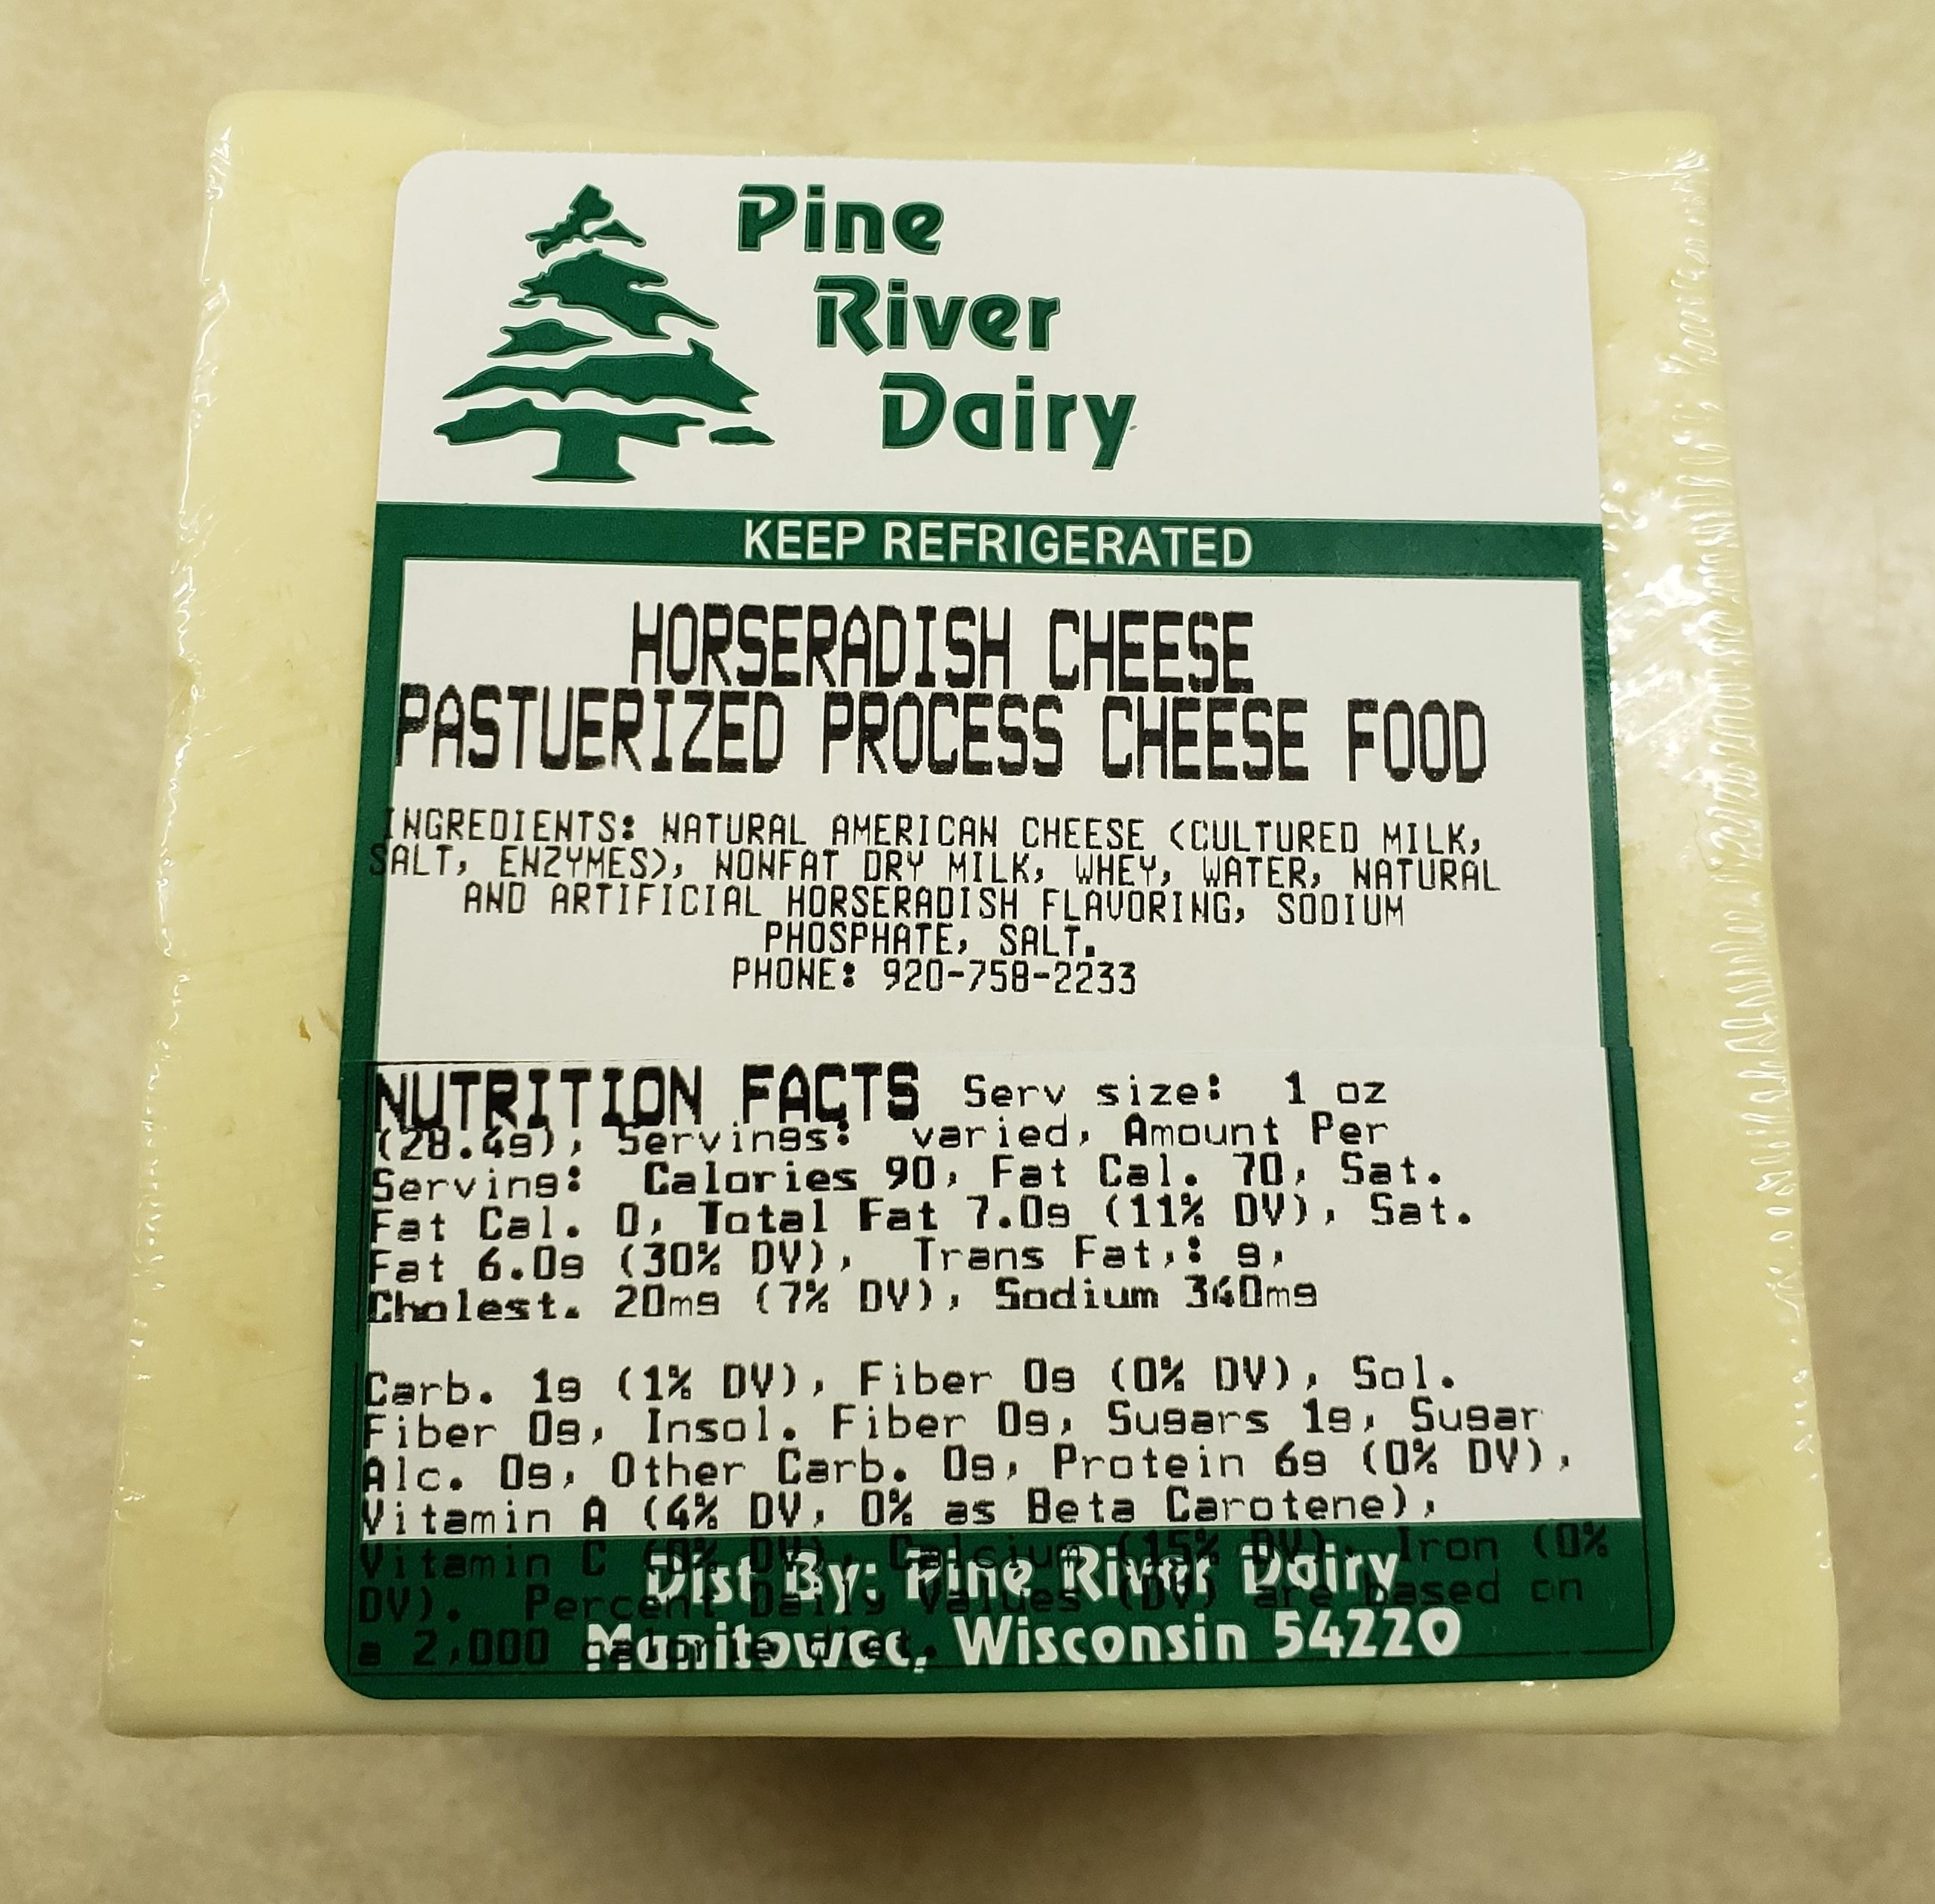 Horseradish Process Cheese Food